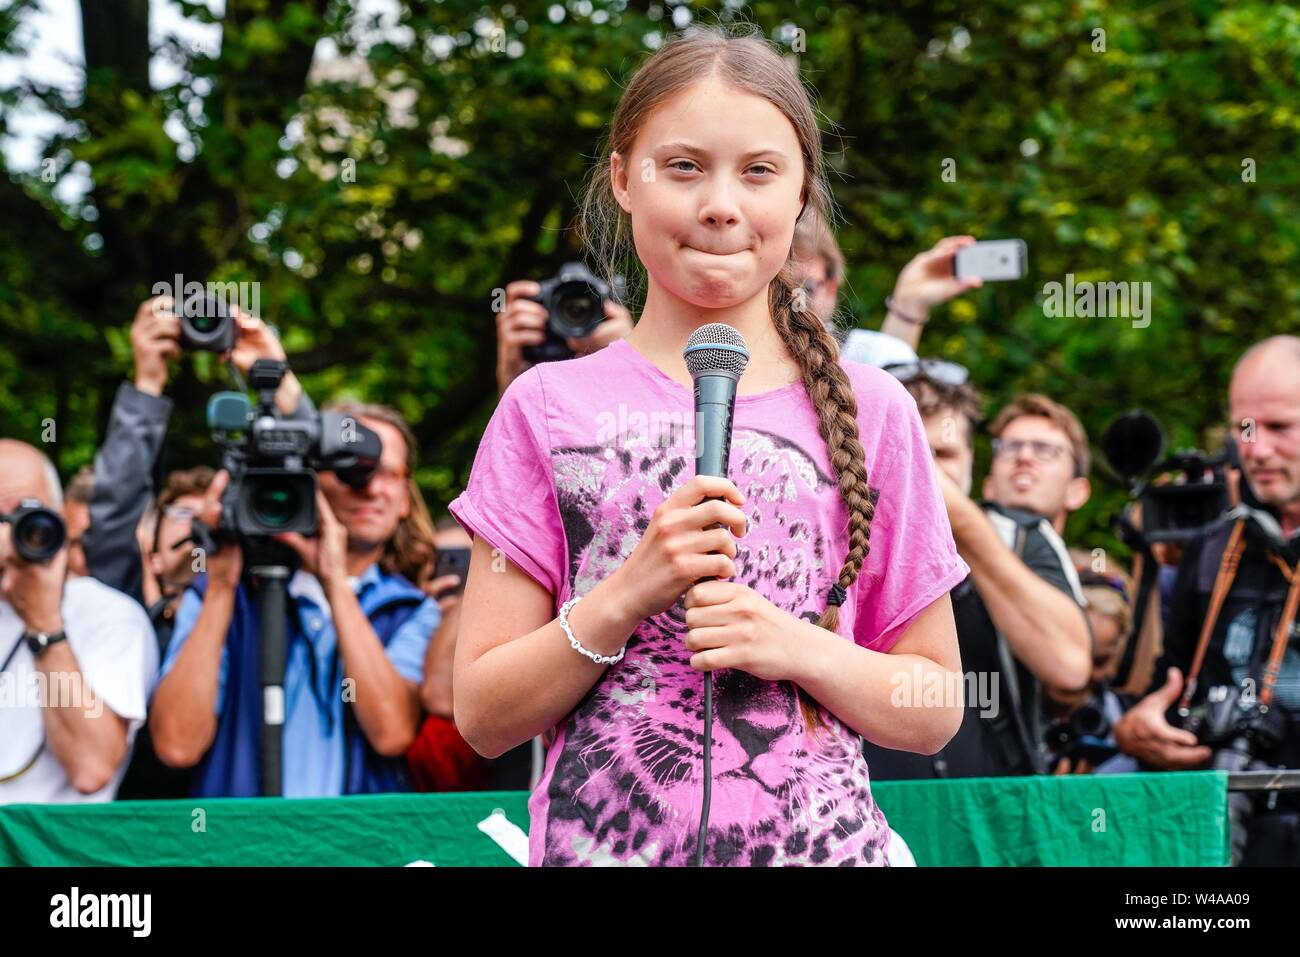 19.07.2019, the 16-year-old Swedish climate activist Greta Thunberg demonstrates together with the Berlin demonstrators at the Fridays for future event in Berlin. In her speech, she encourages the demonstrators to continue strikes. The school strikes for compliance with the Paris Convention were initiated by the Swedish schoolgirl and are now taking place worldwide.   usage worldwide - Stock Image